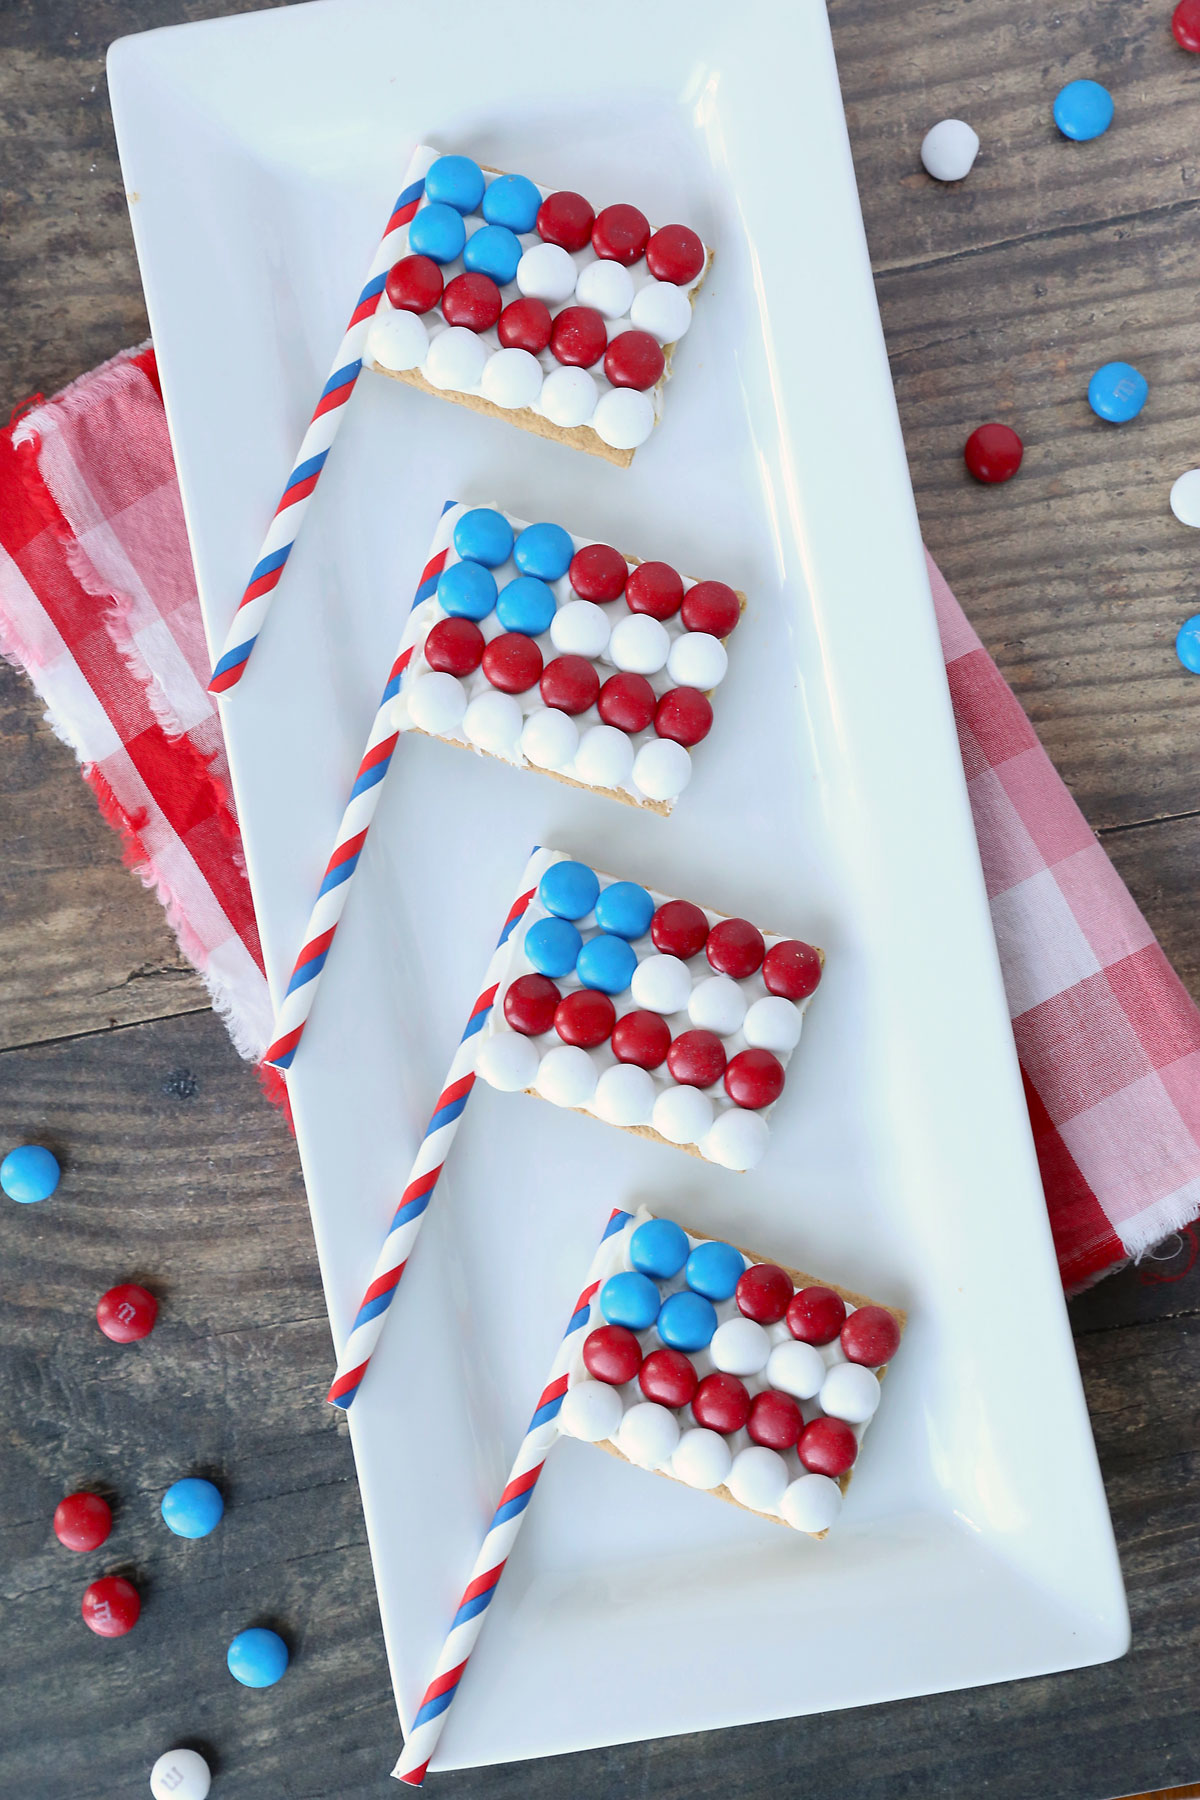 Graham crackers decorated to look like the American flag, with red, white and blue M&Ms on top